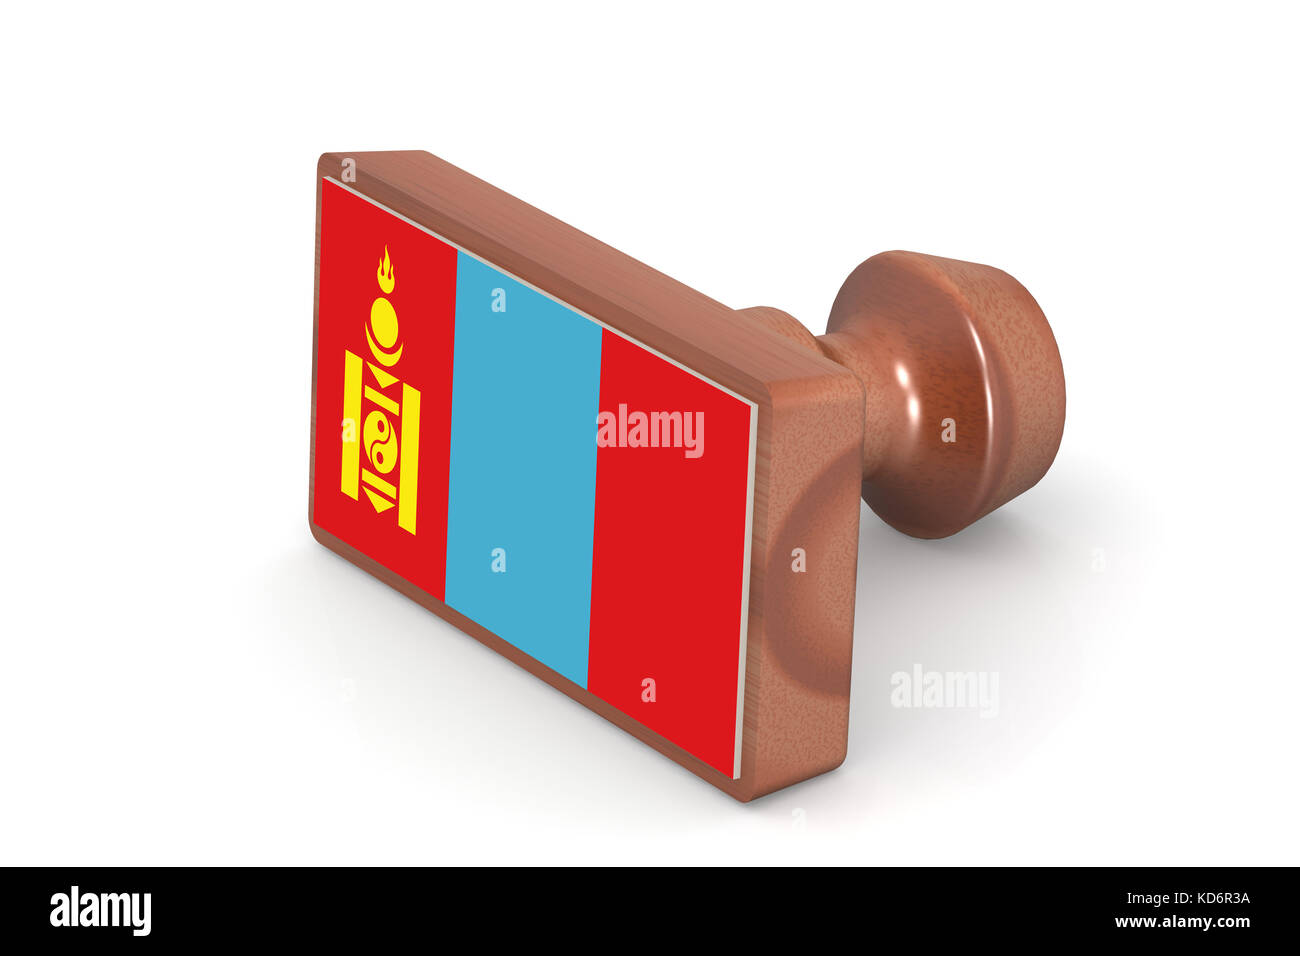 Wooden stamp with Mongolia flag image with hi-res rendered artwork that could be used for any graphic design. - Stock Image